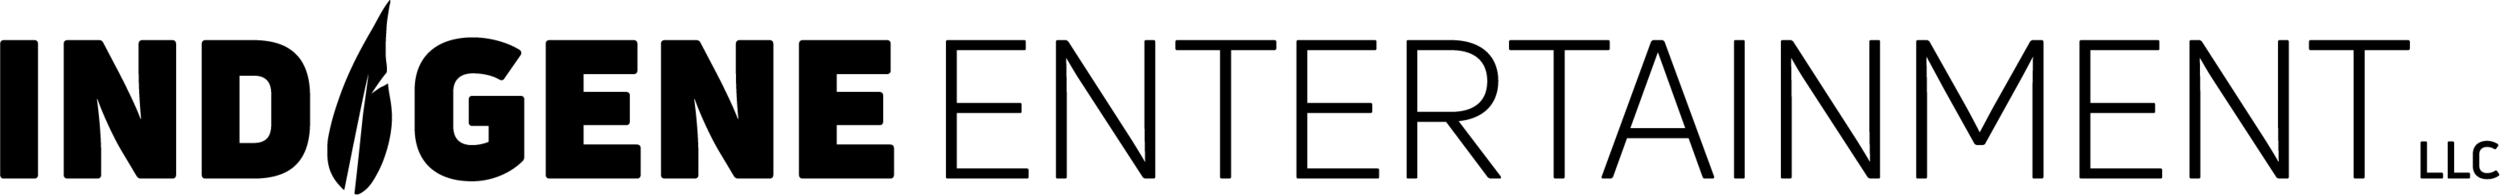 IE llc logo - BLACK.png